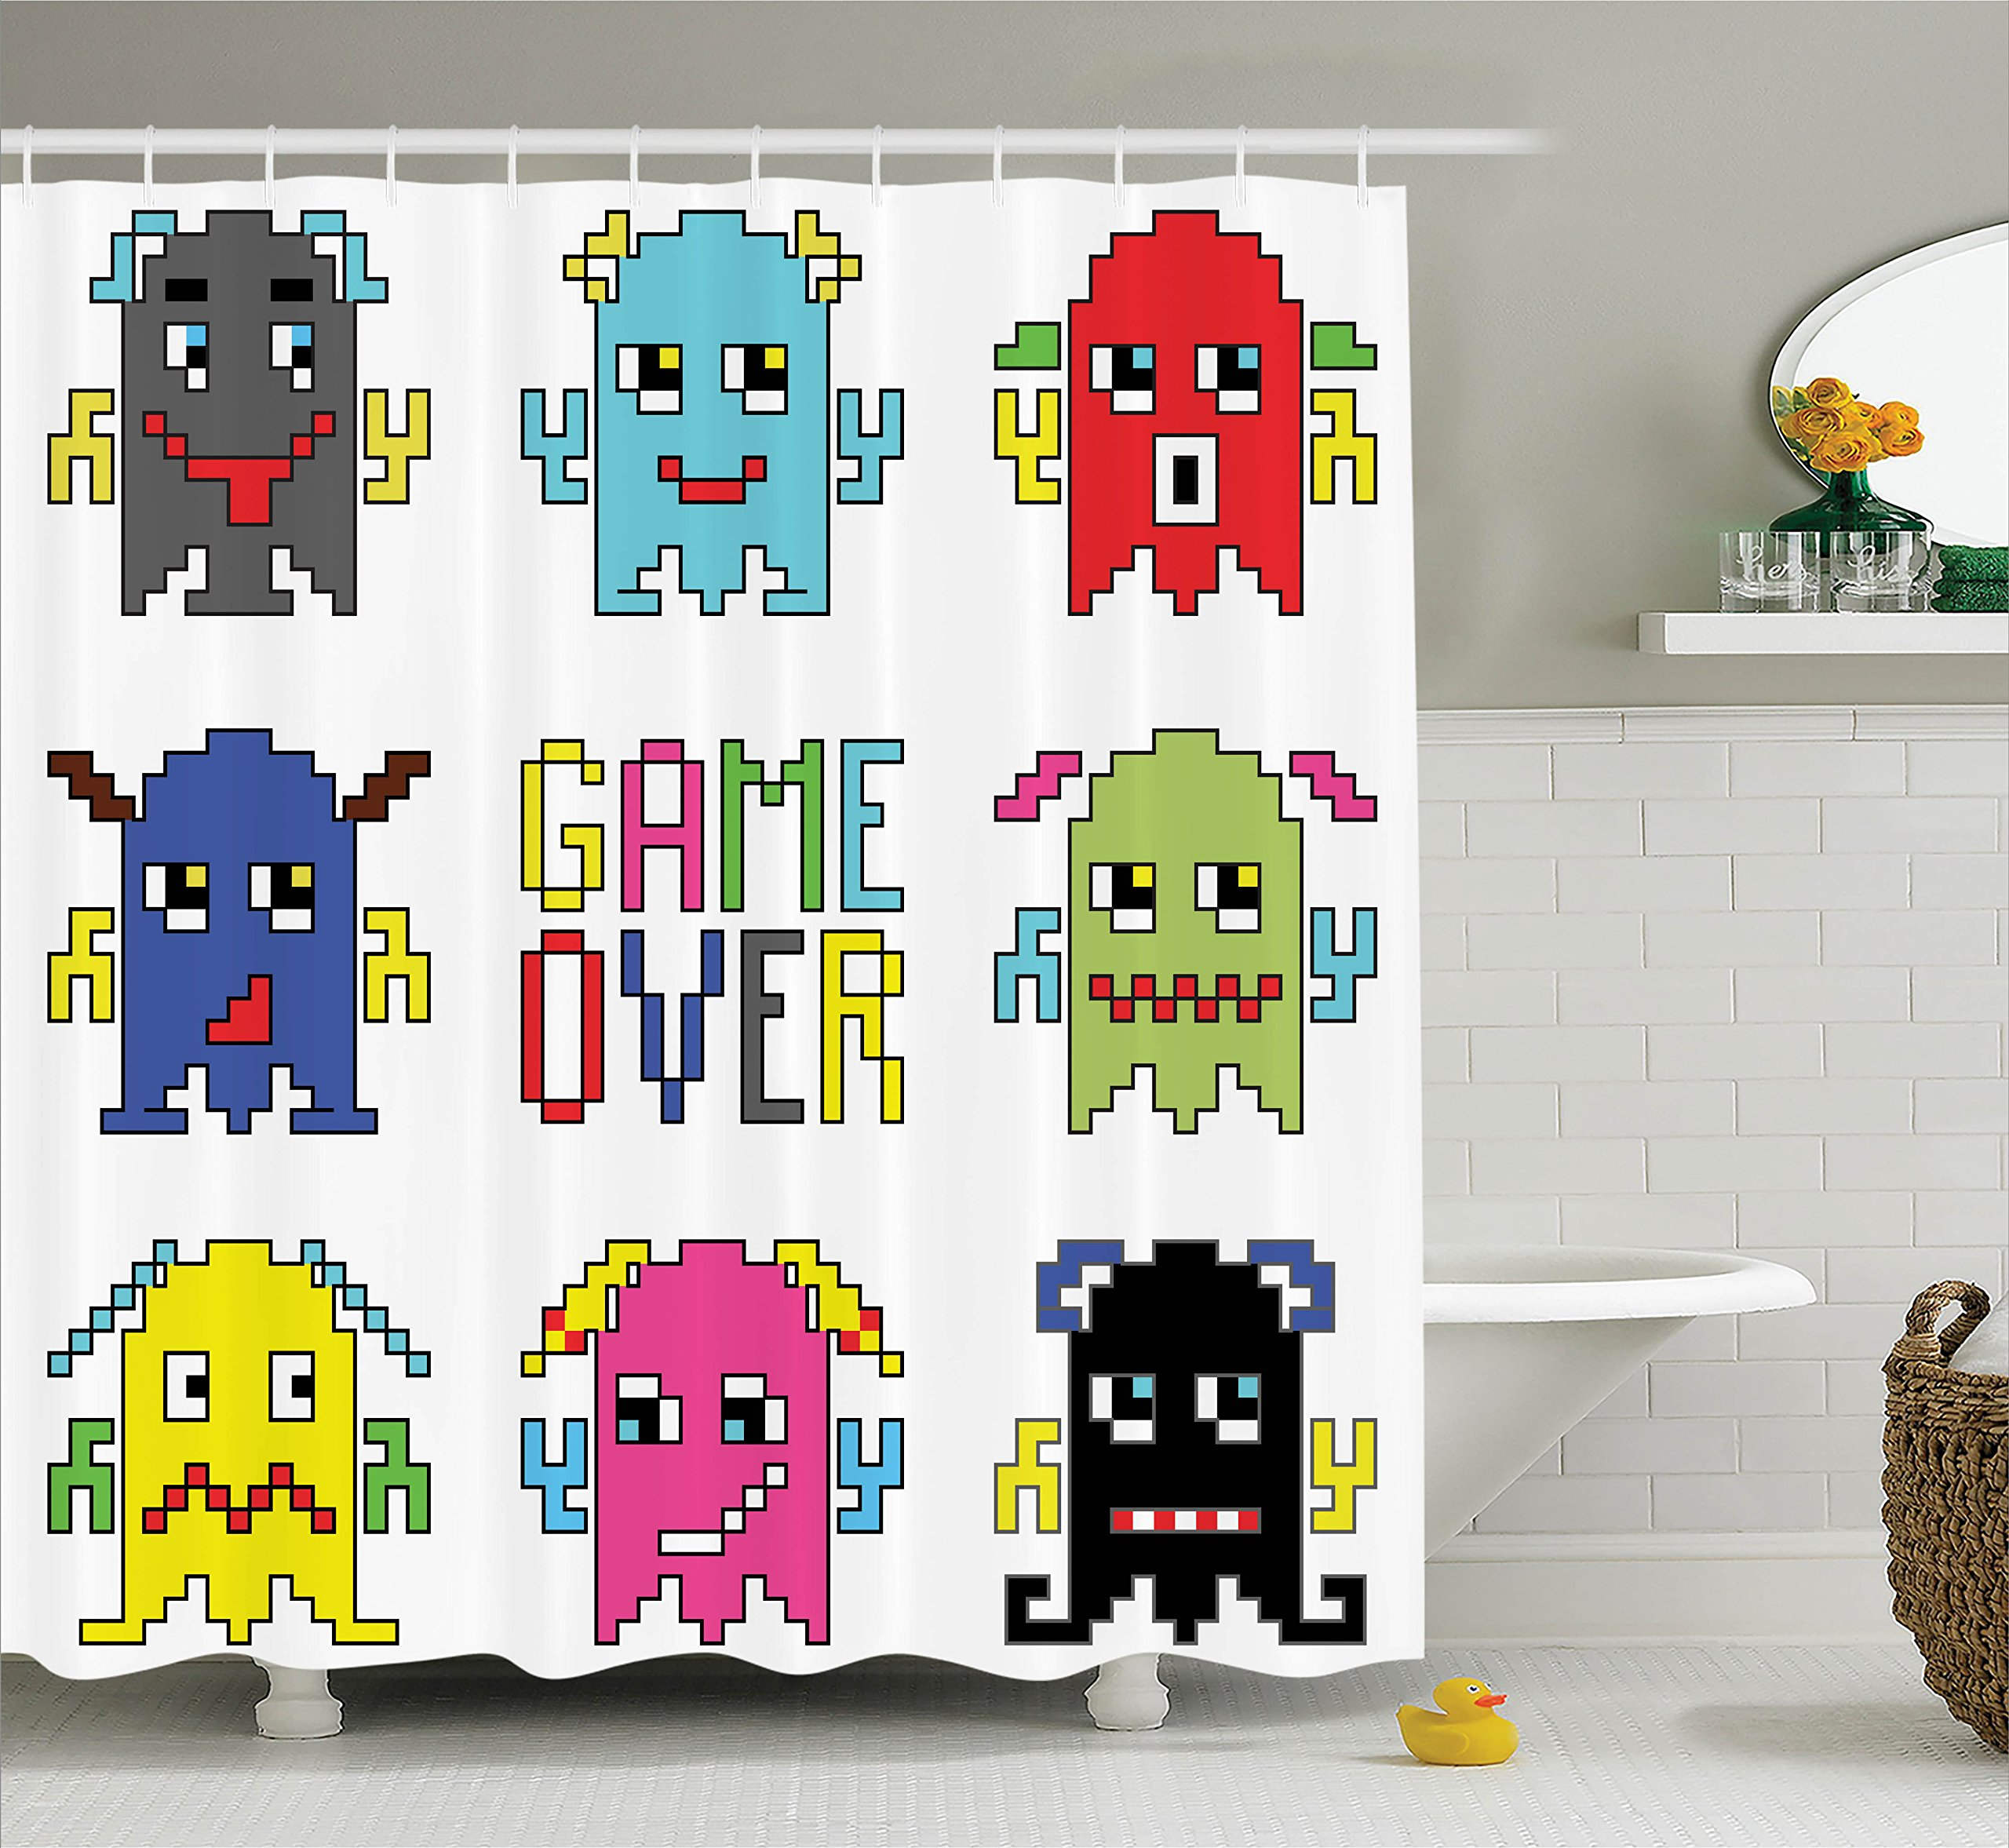 Ambesonne 90S Decorations Shower Curtain Set, Pixel Robot Emoticons with Game Over Sign Inspired by 90'S Computer Games Fun Artprint, Bathroom Accessories, 69W X 70L inches, Yellow Red